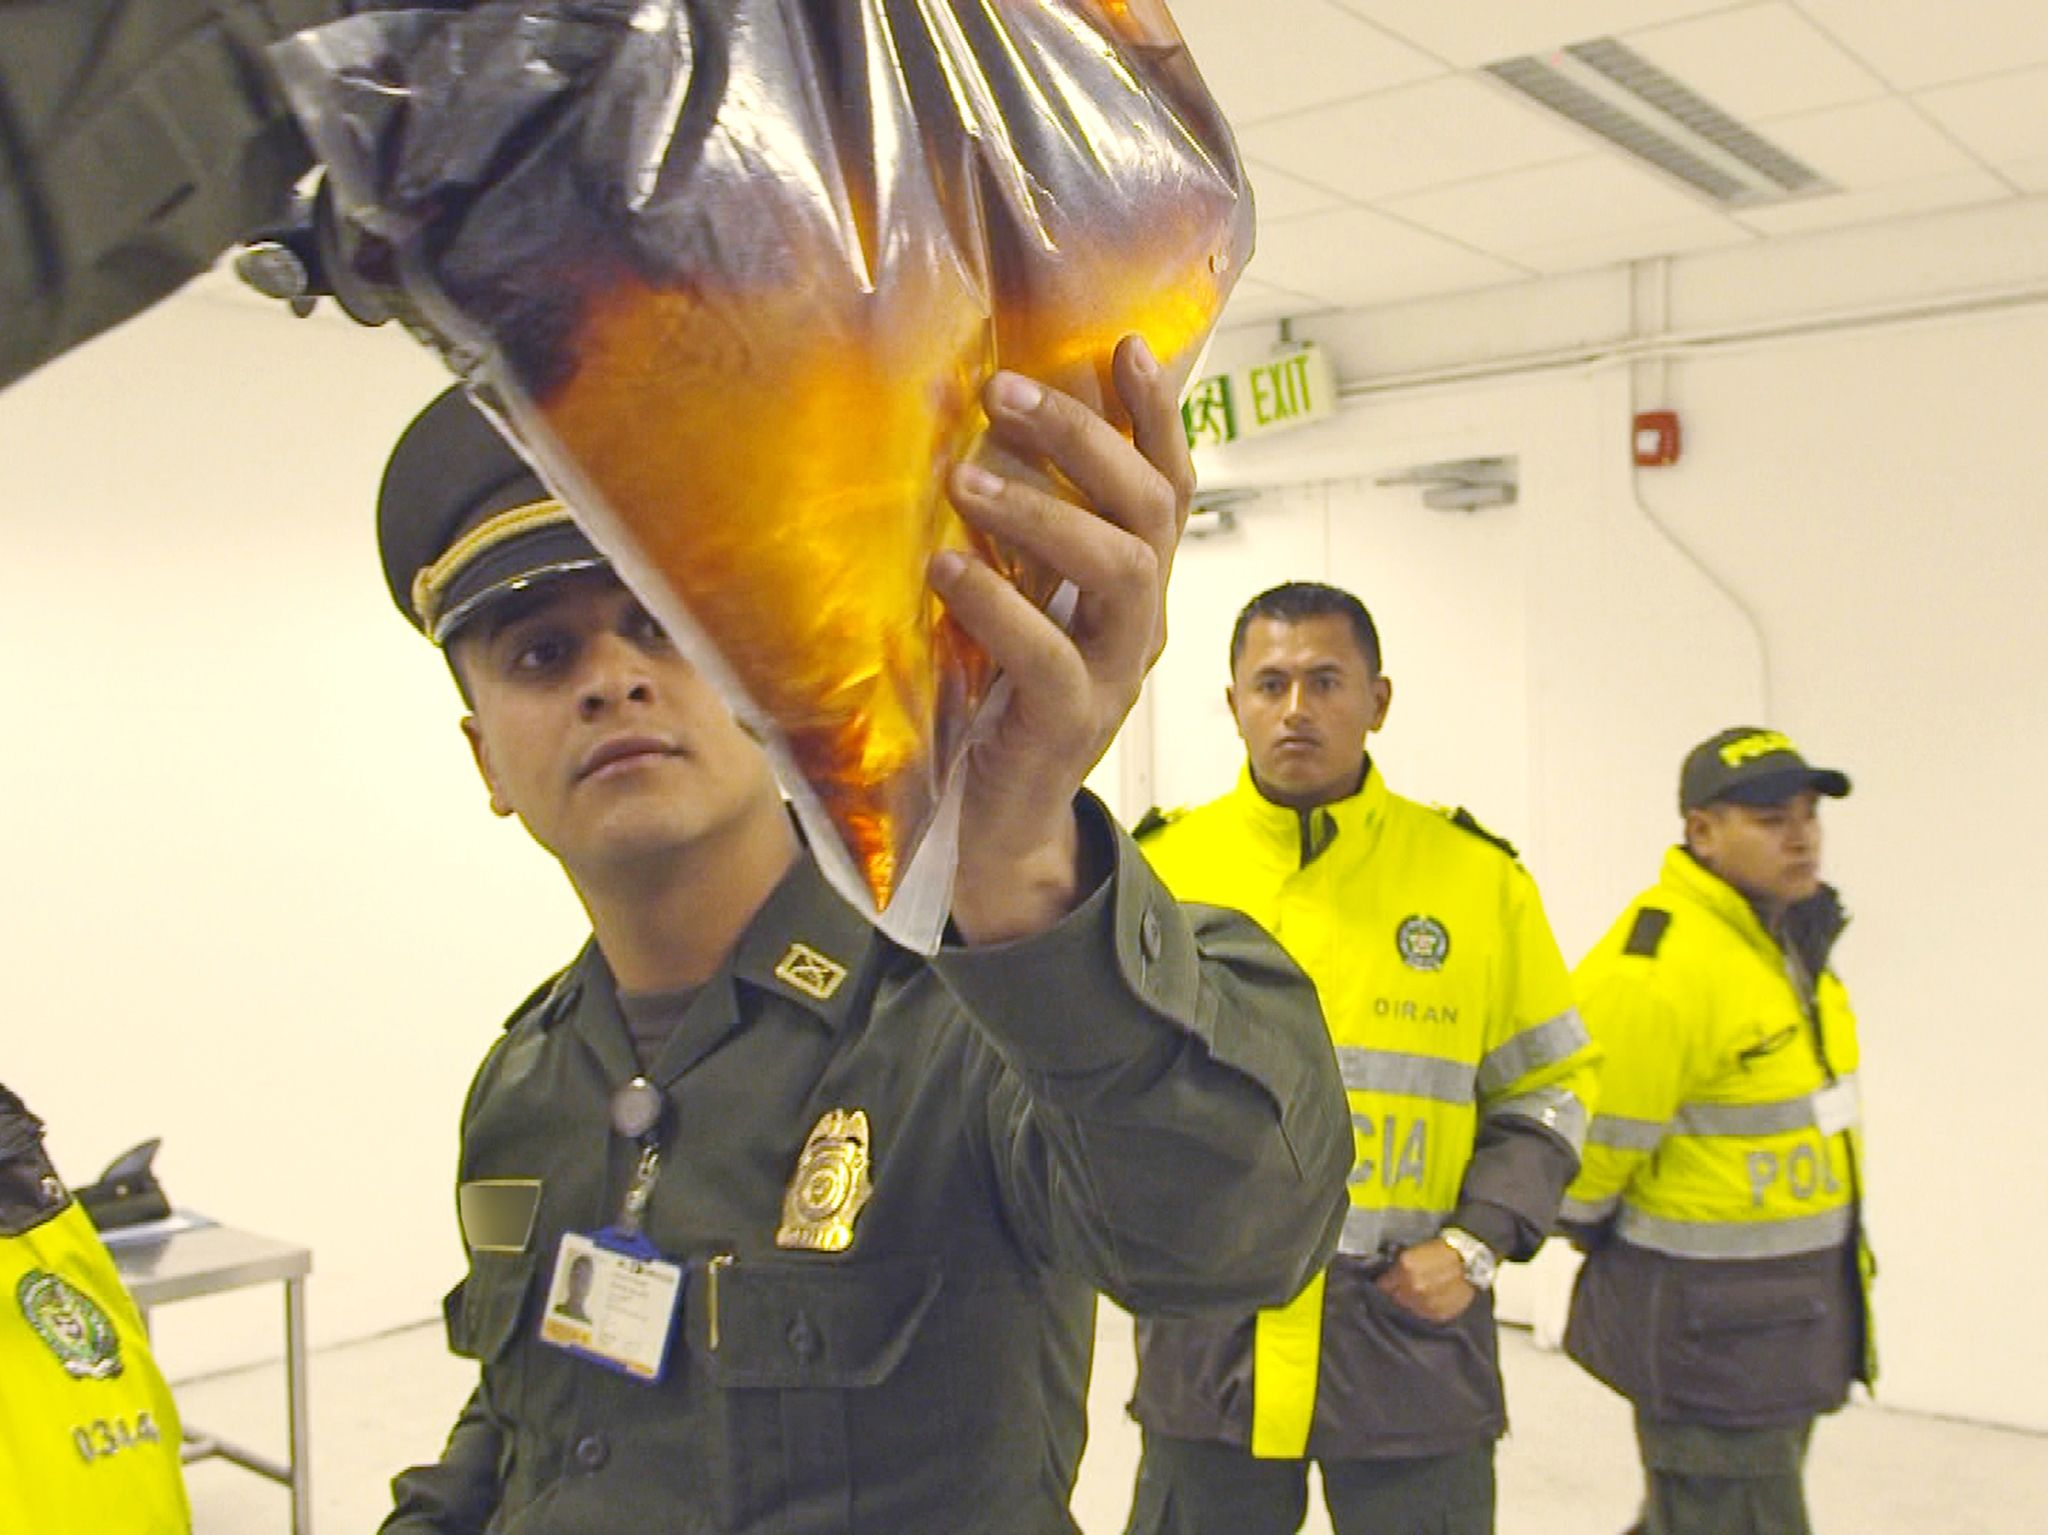 Bogota, Colombia:  An officer examines suspicious fluid. This image is from Airport Security:... [Photo of the day - October 2017]